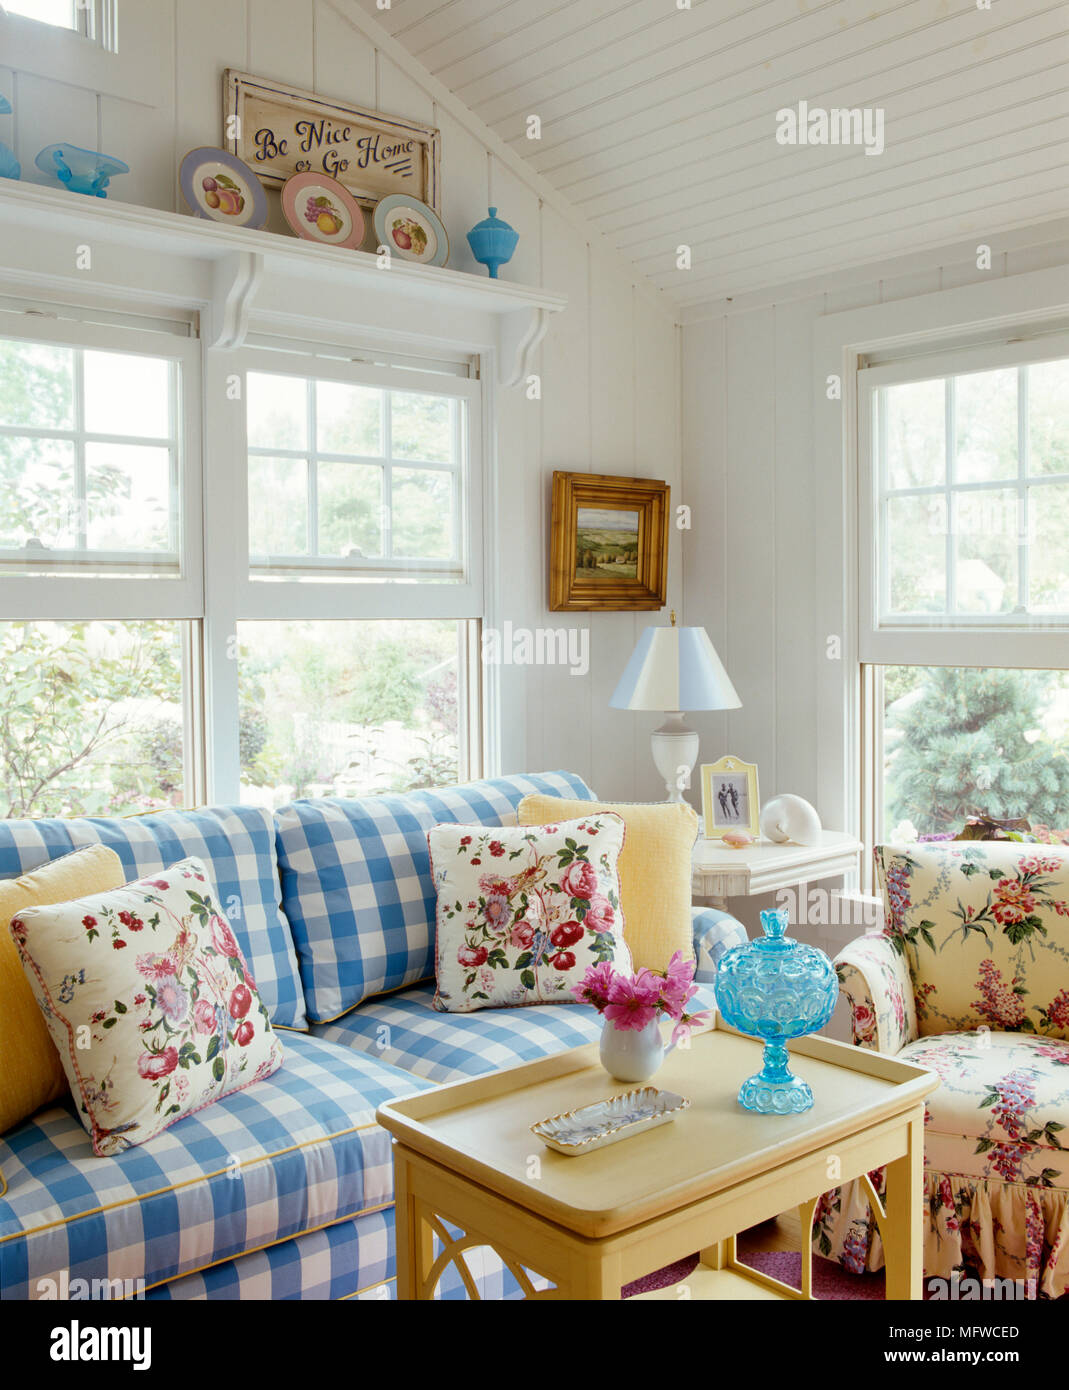 Blue Check Sofa In White Country Style Sitting Room Stock Photo